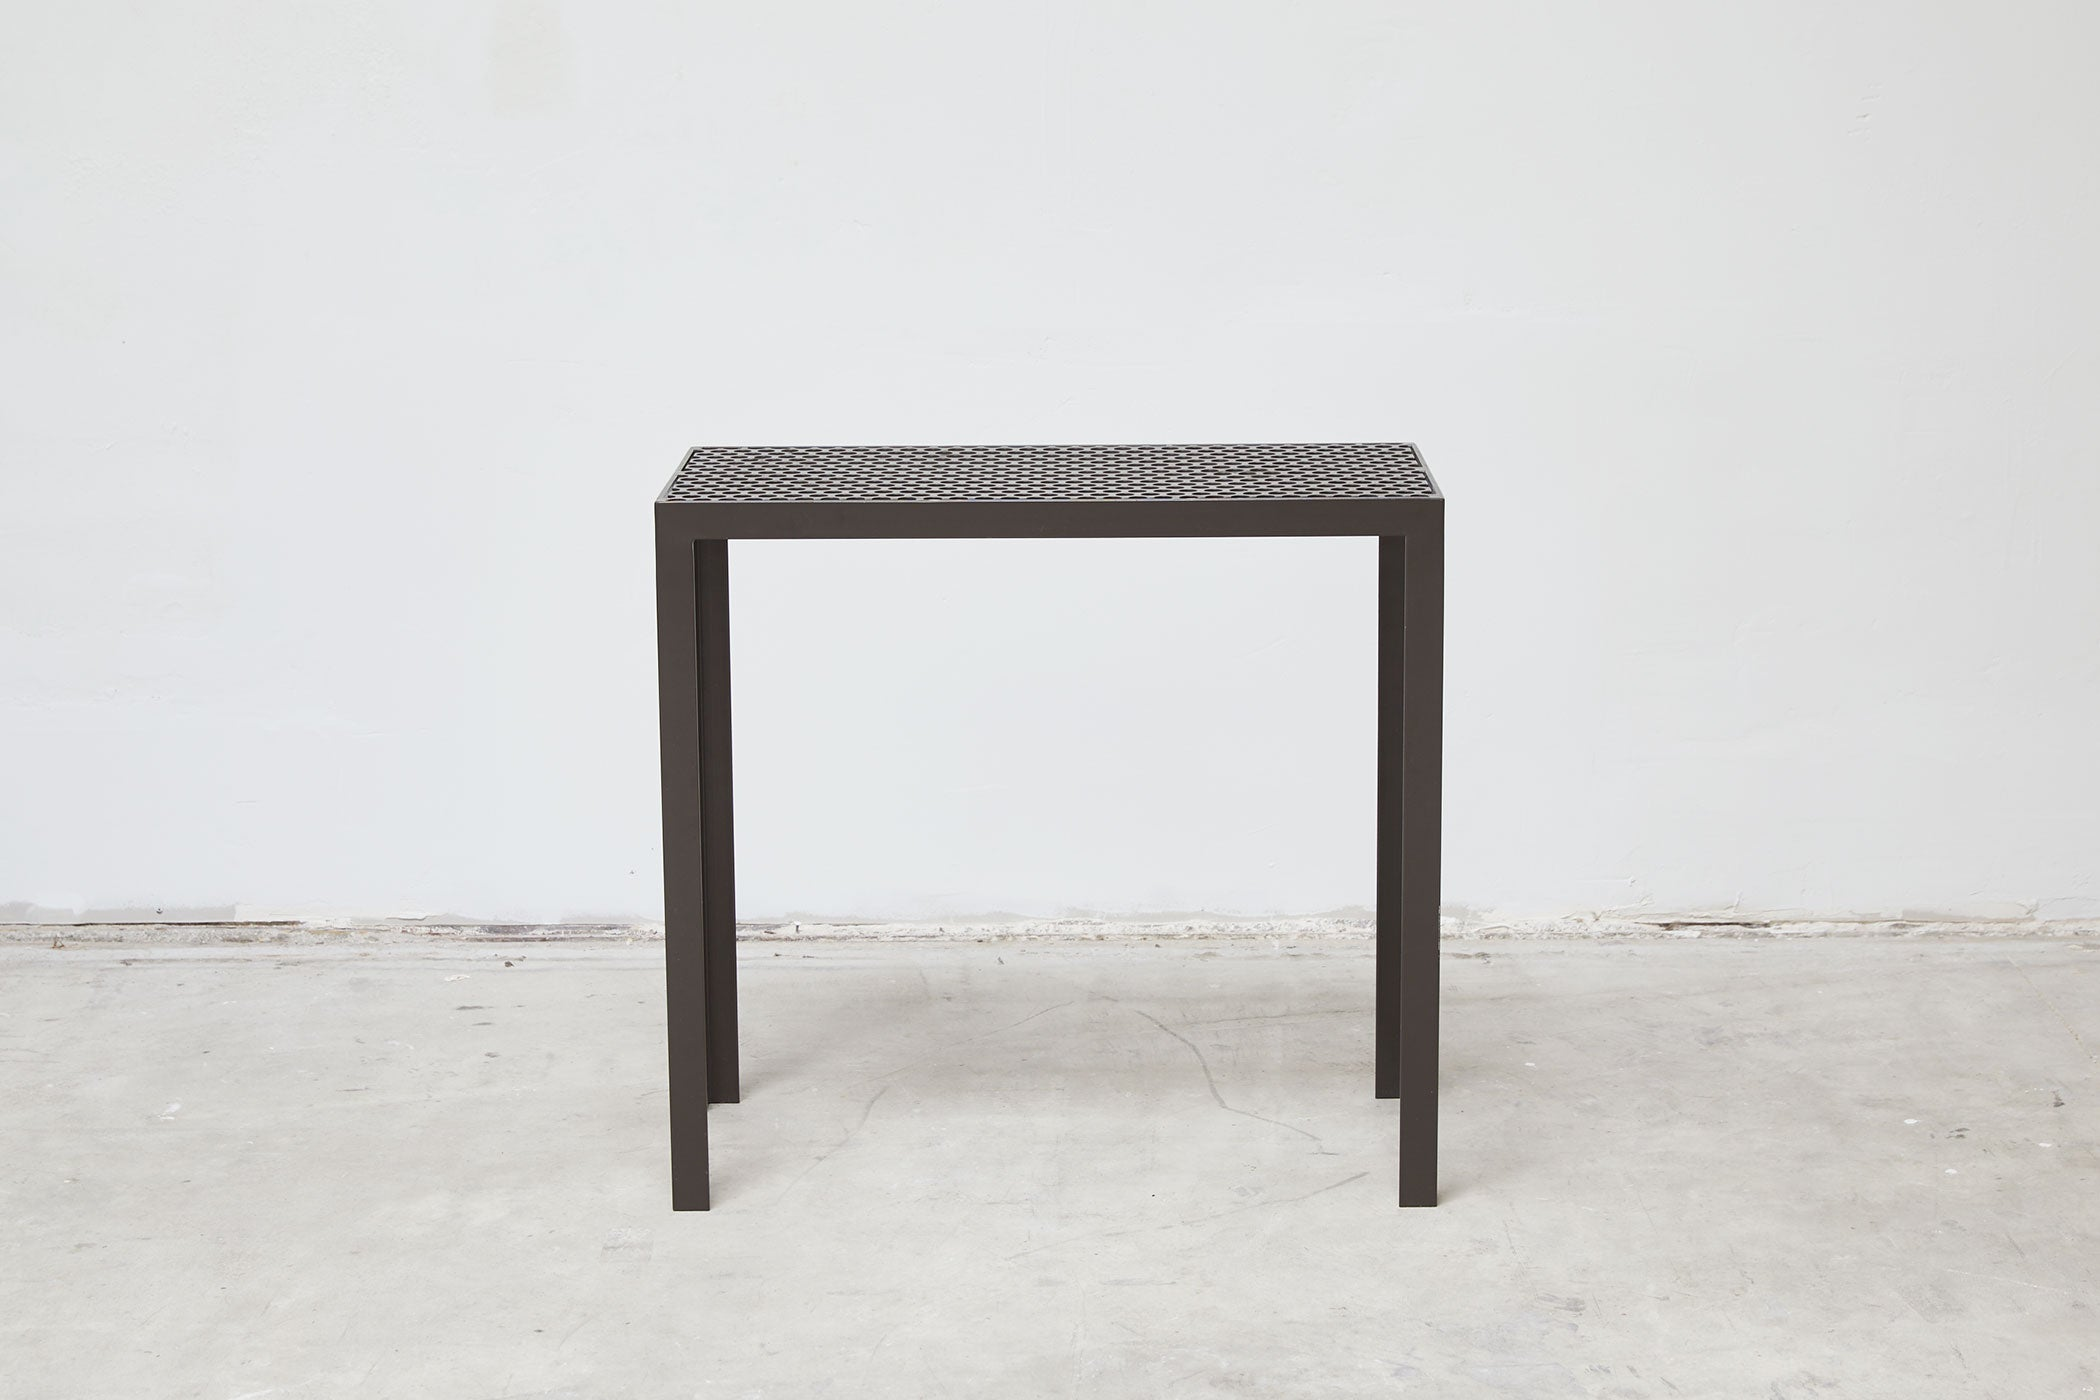 RAD Furniture's Perforated Entry Table